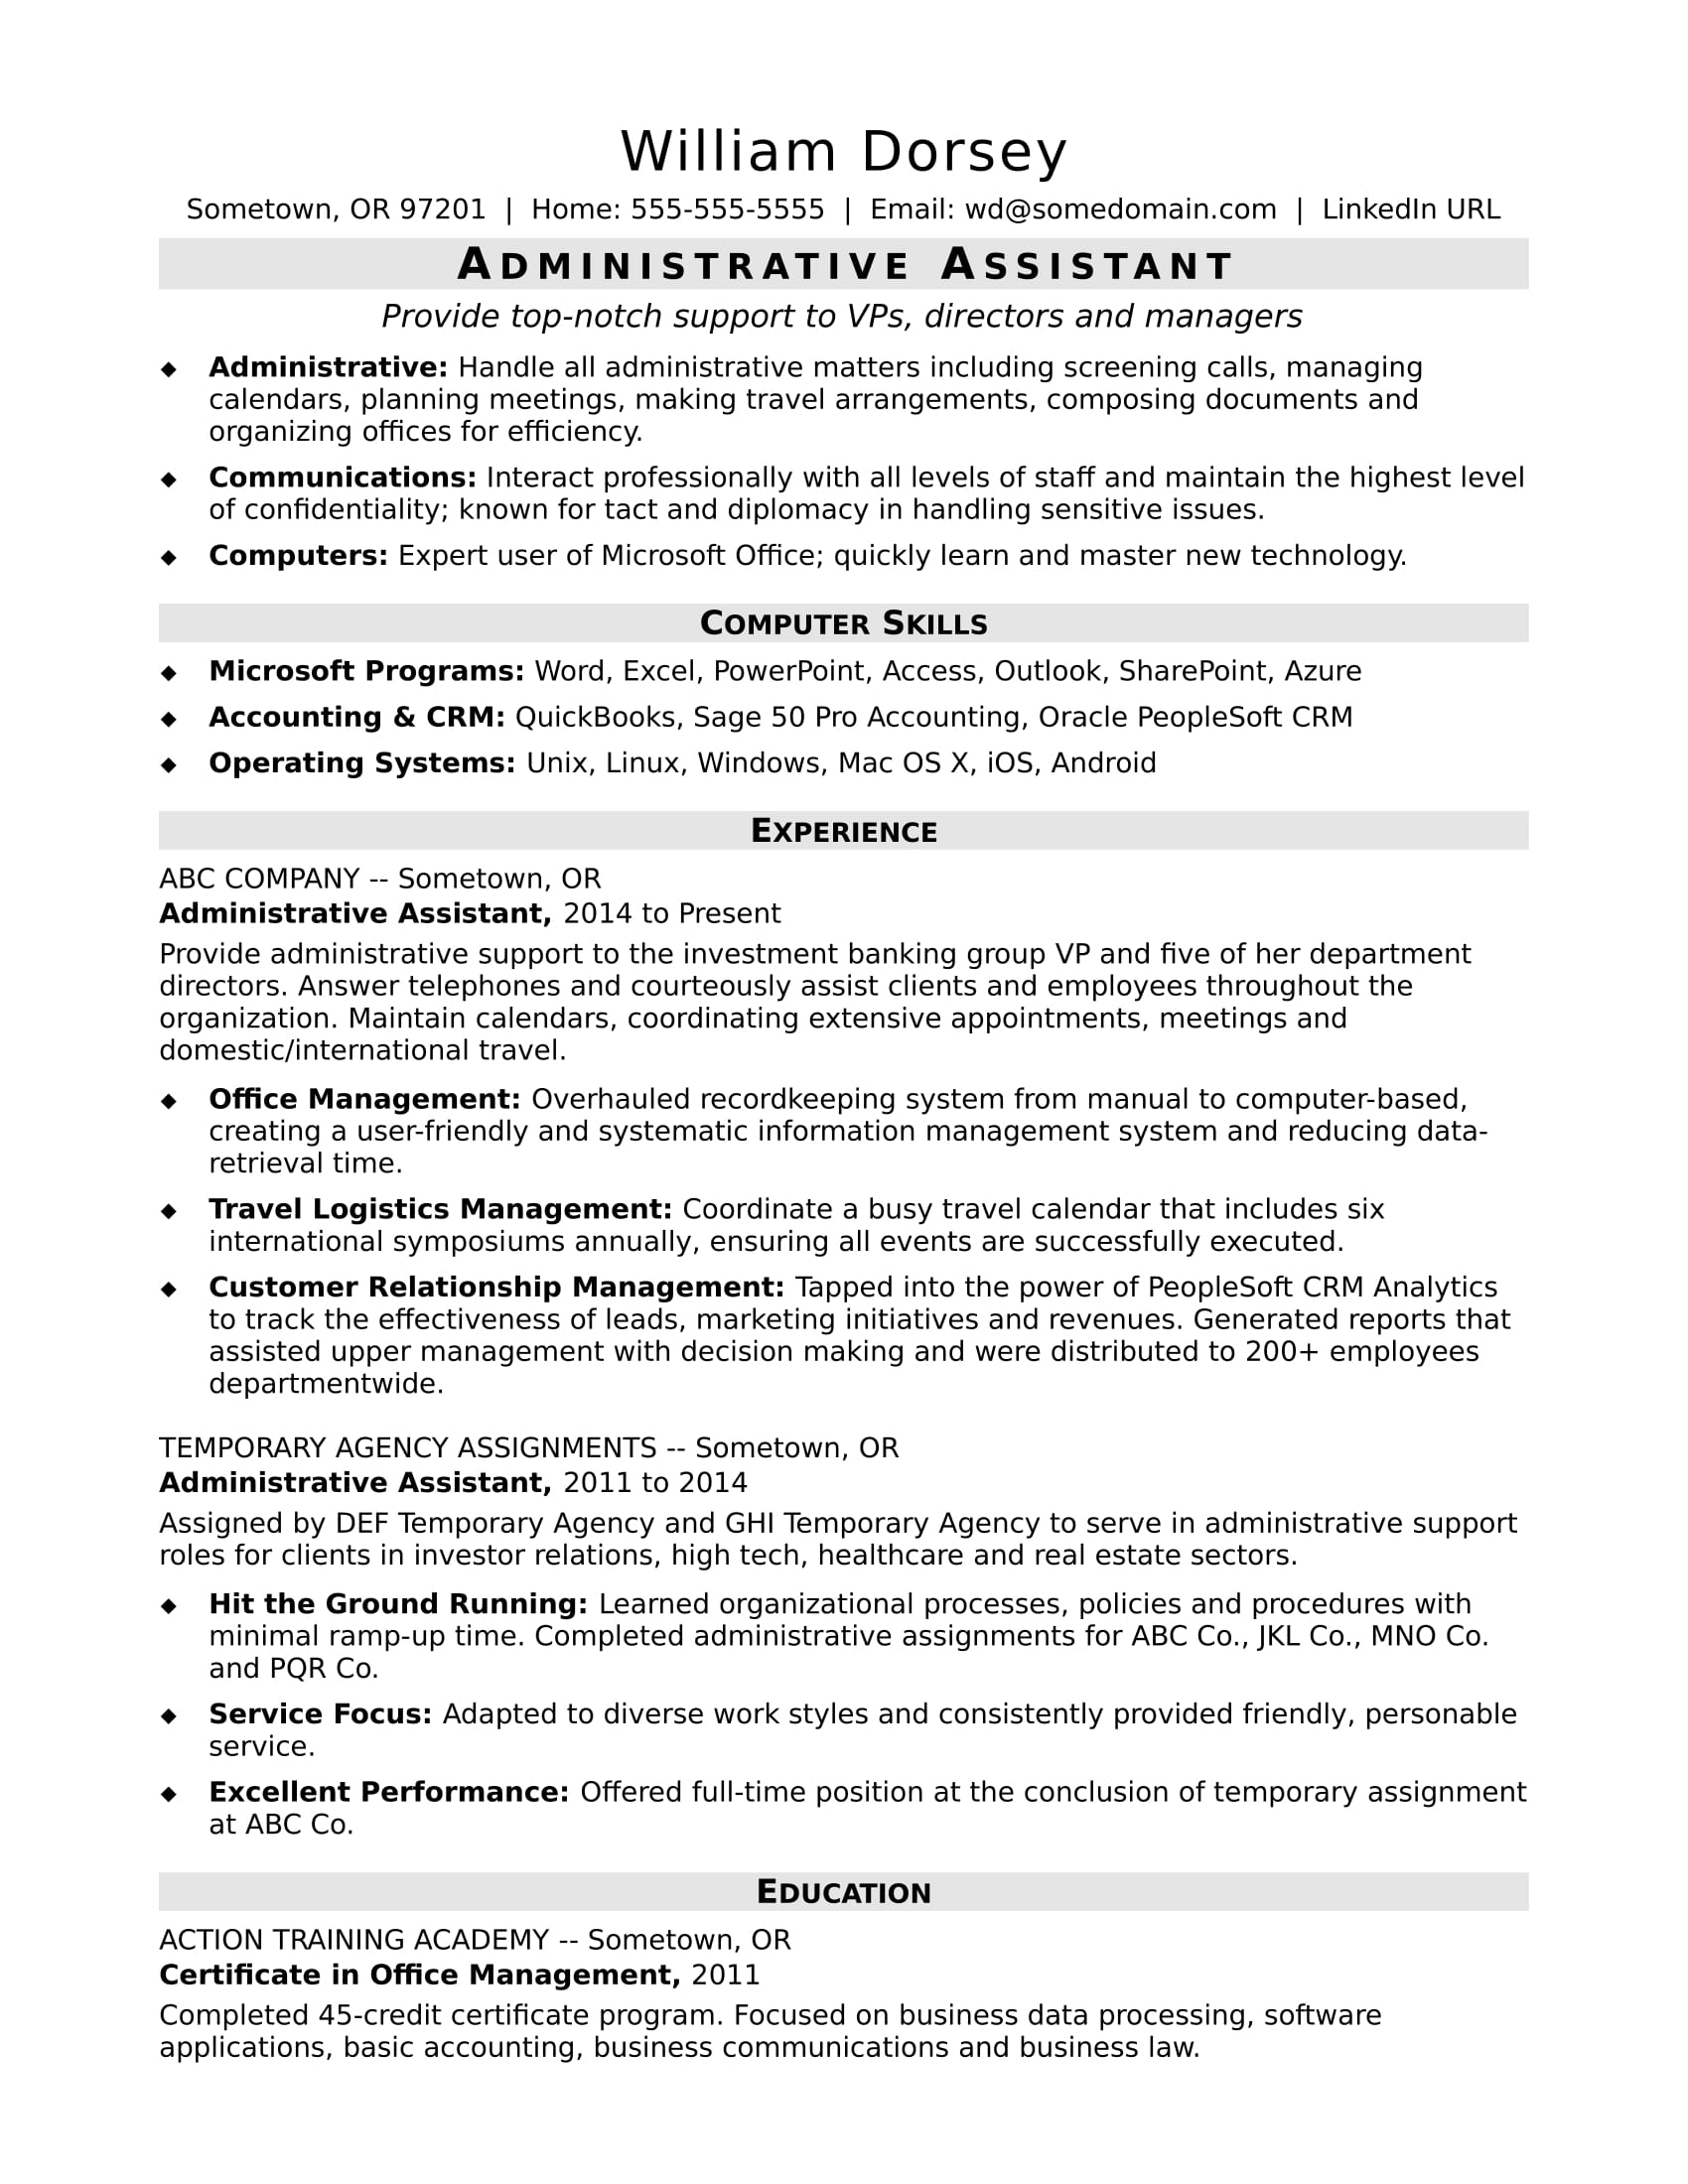 Wonderful Sample Resume For A Midlevel Administrative Assistant For Administrative Assistant Resume Samples